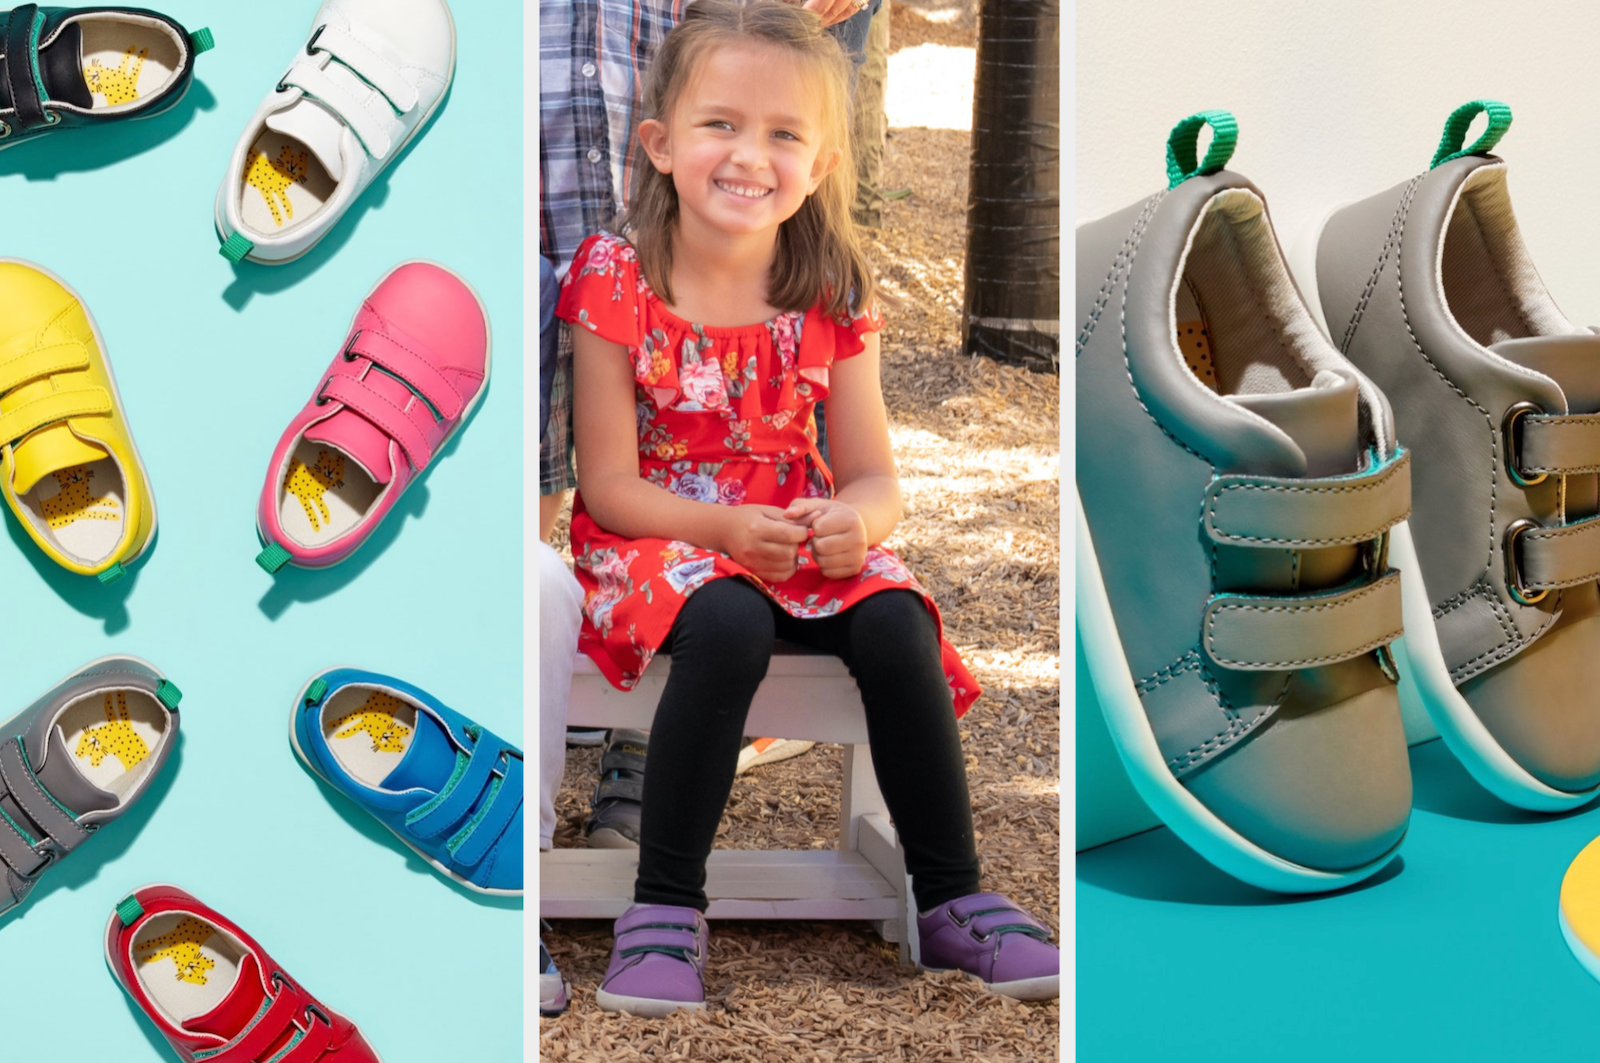 buzzfeed editor's kid wearing the shoes in purple, the shoes in various colors, and a close-up of the shoes' velcro closure